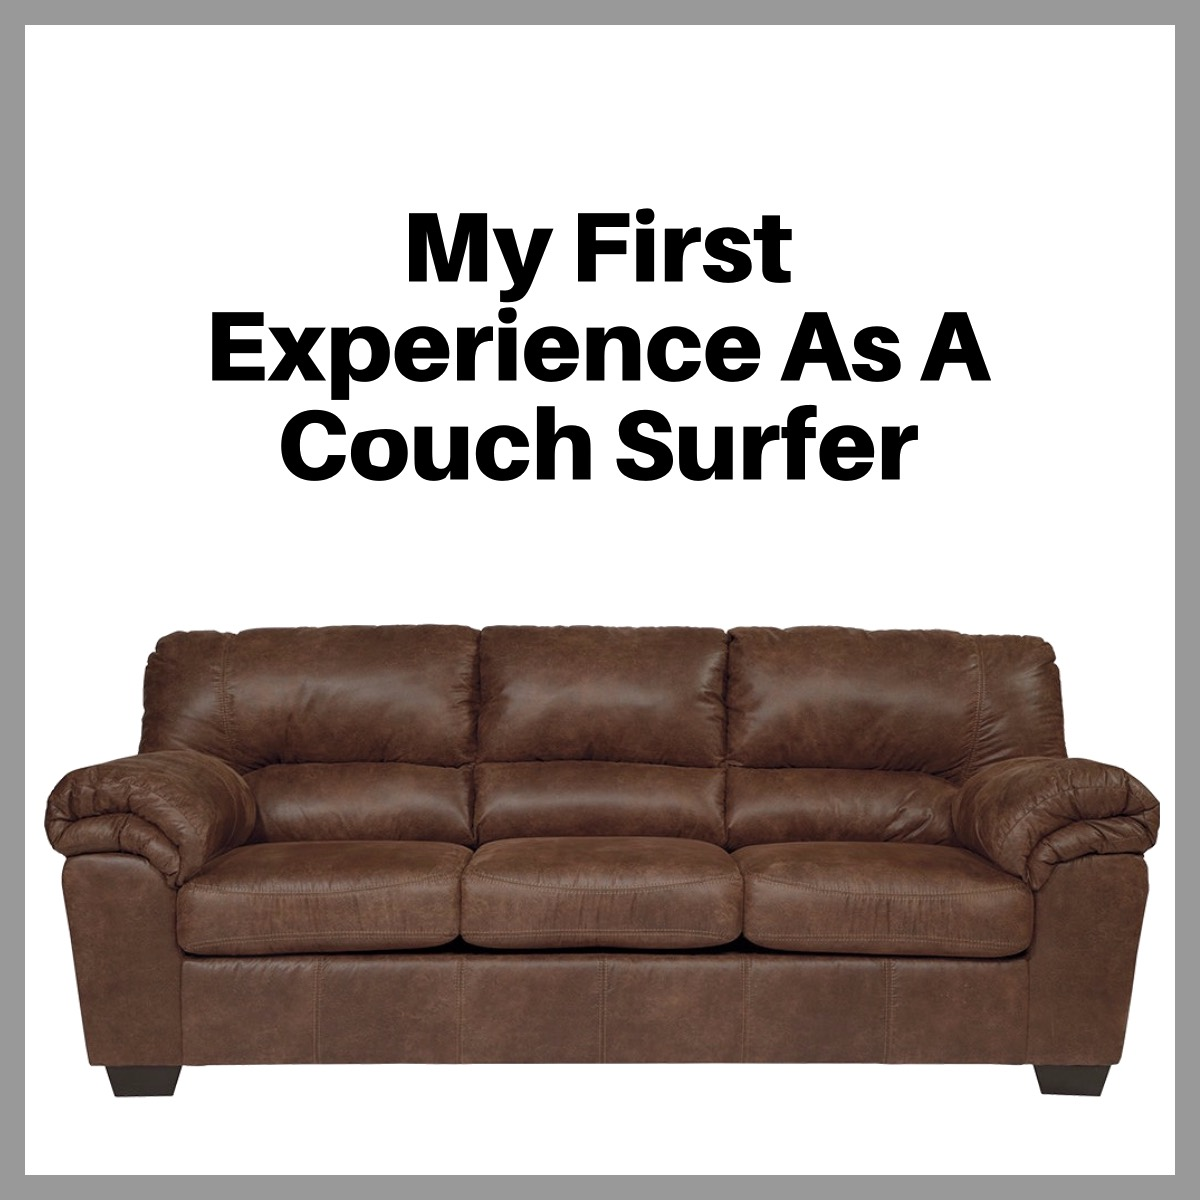 My First Experience As A Couch Surfer